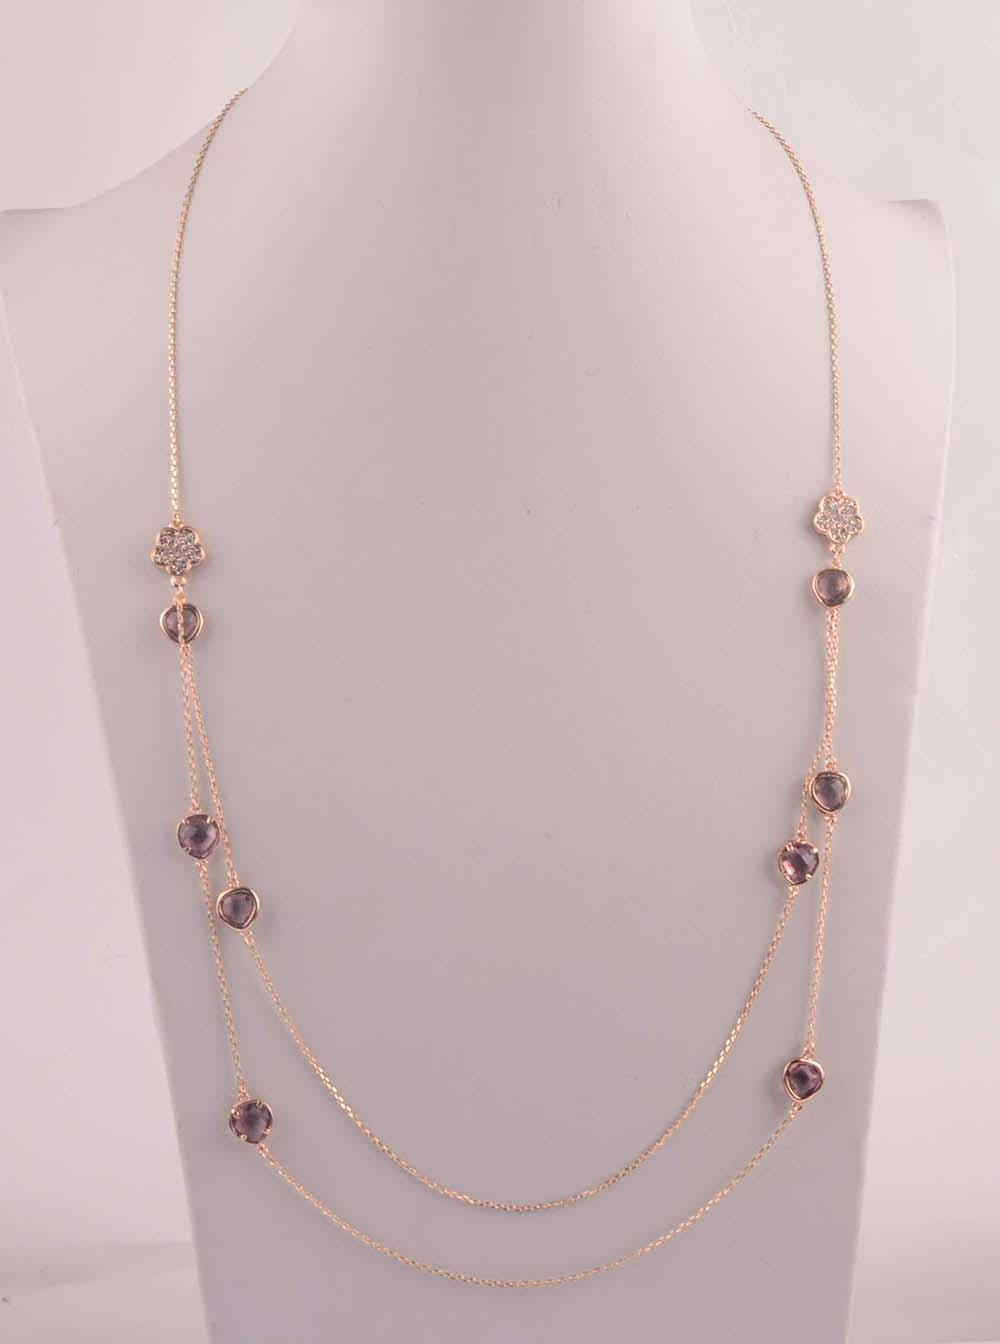 907553 Lady Long Necklace